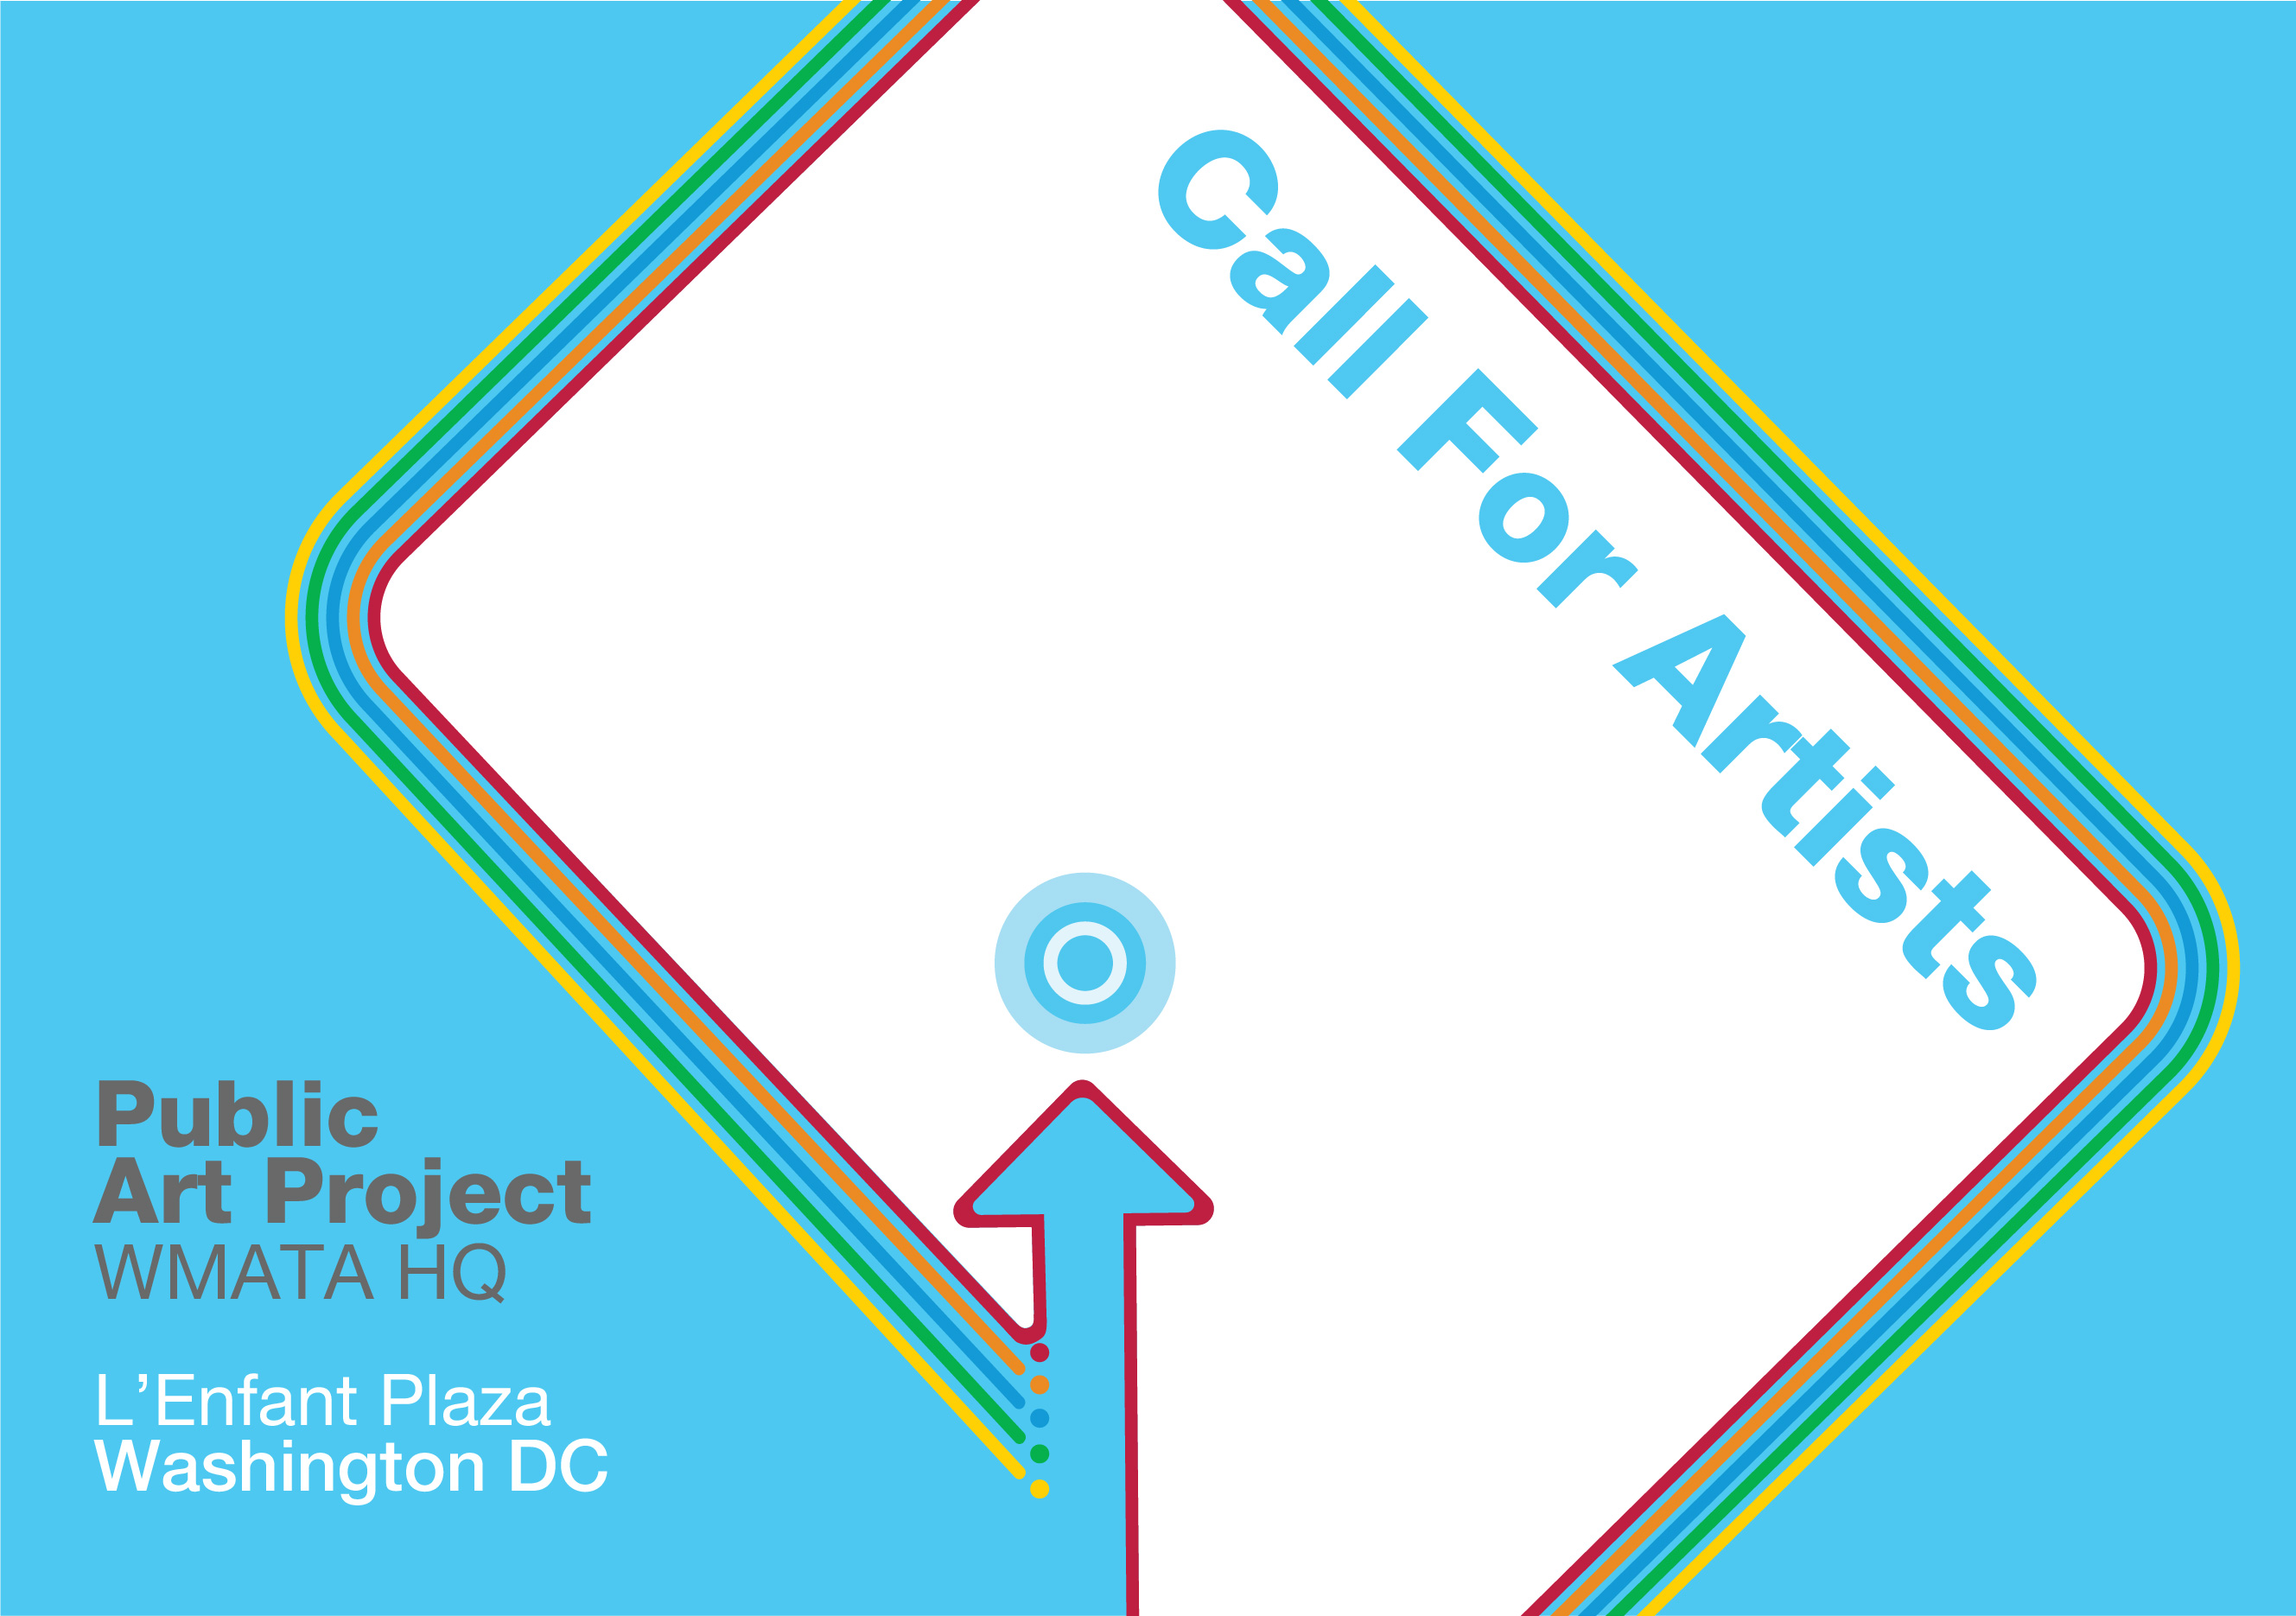 Call for Artists for WMATA HQ